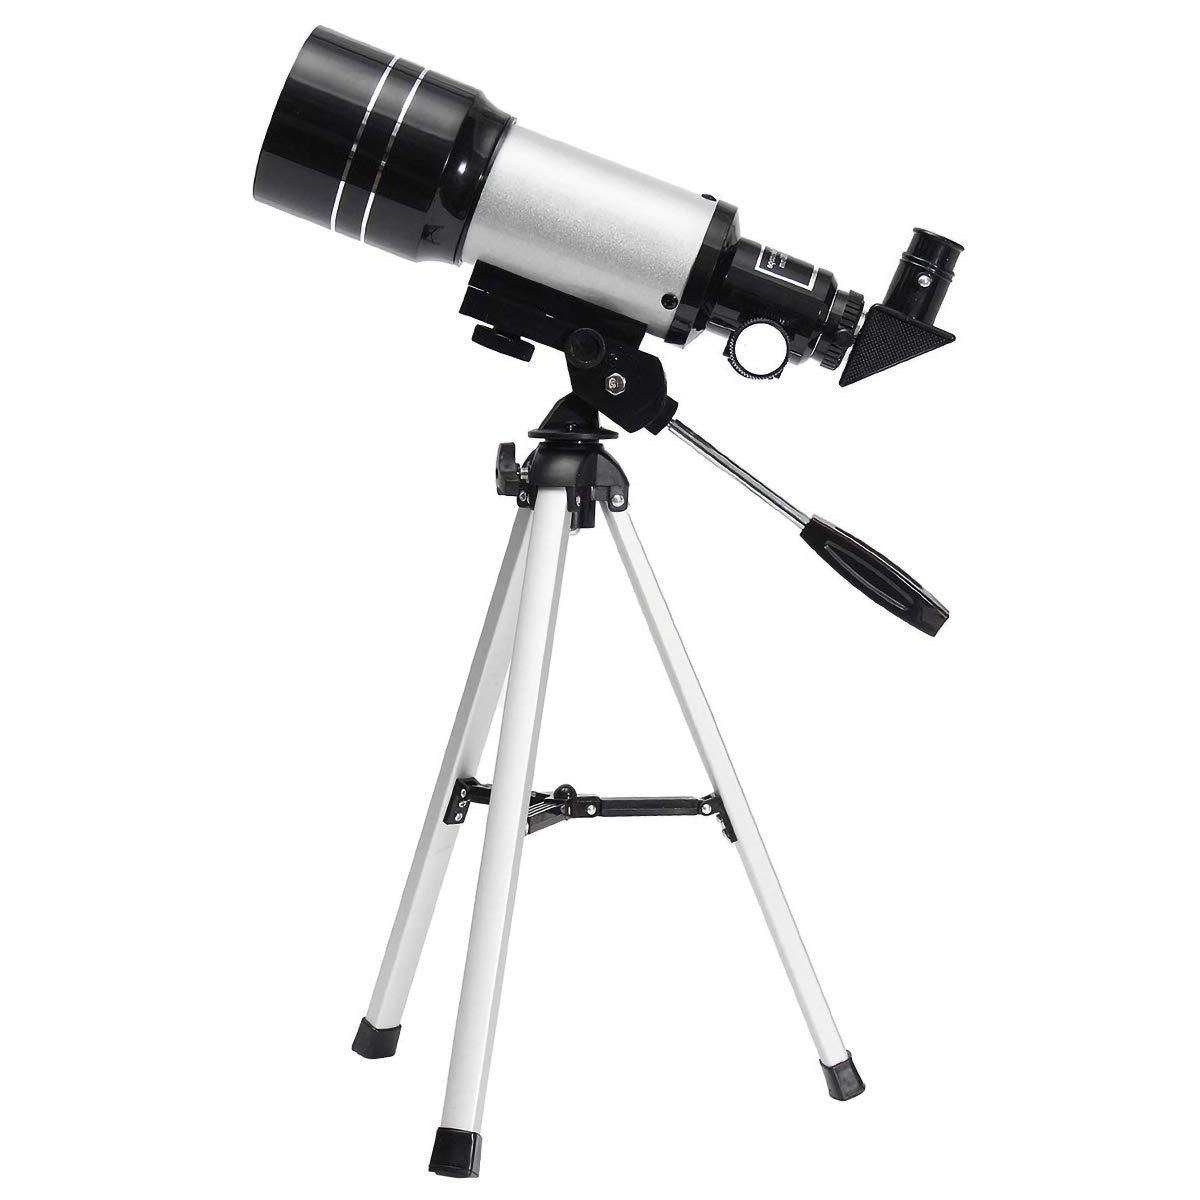 EGOERA Space Astronomic Telescope, Professional 150X Kids Telescopes Sky Monocular Telescopes for Kids with Tripod and 2 Options Eyepiece Educational Toys for Sky Star Gazing by EGOERA